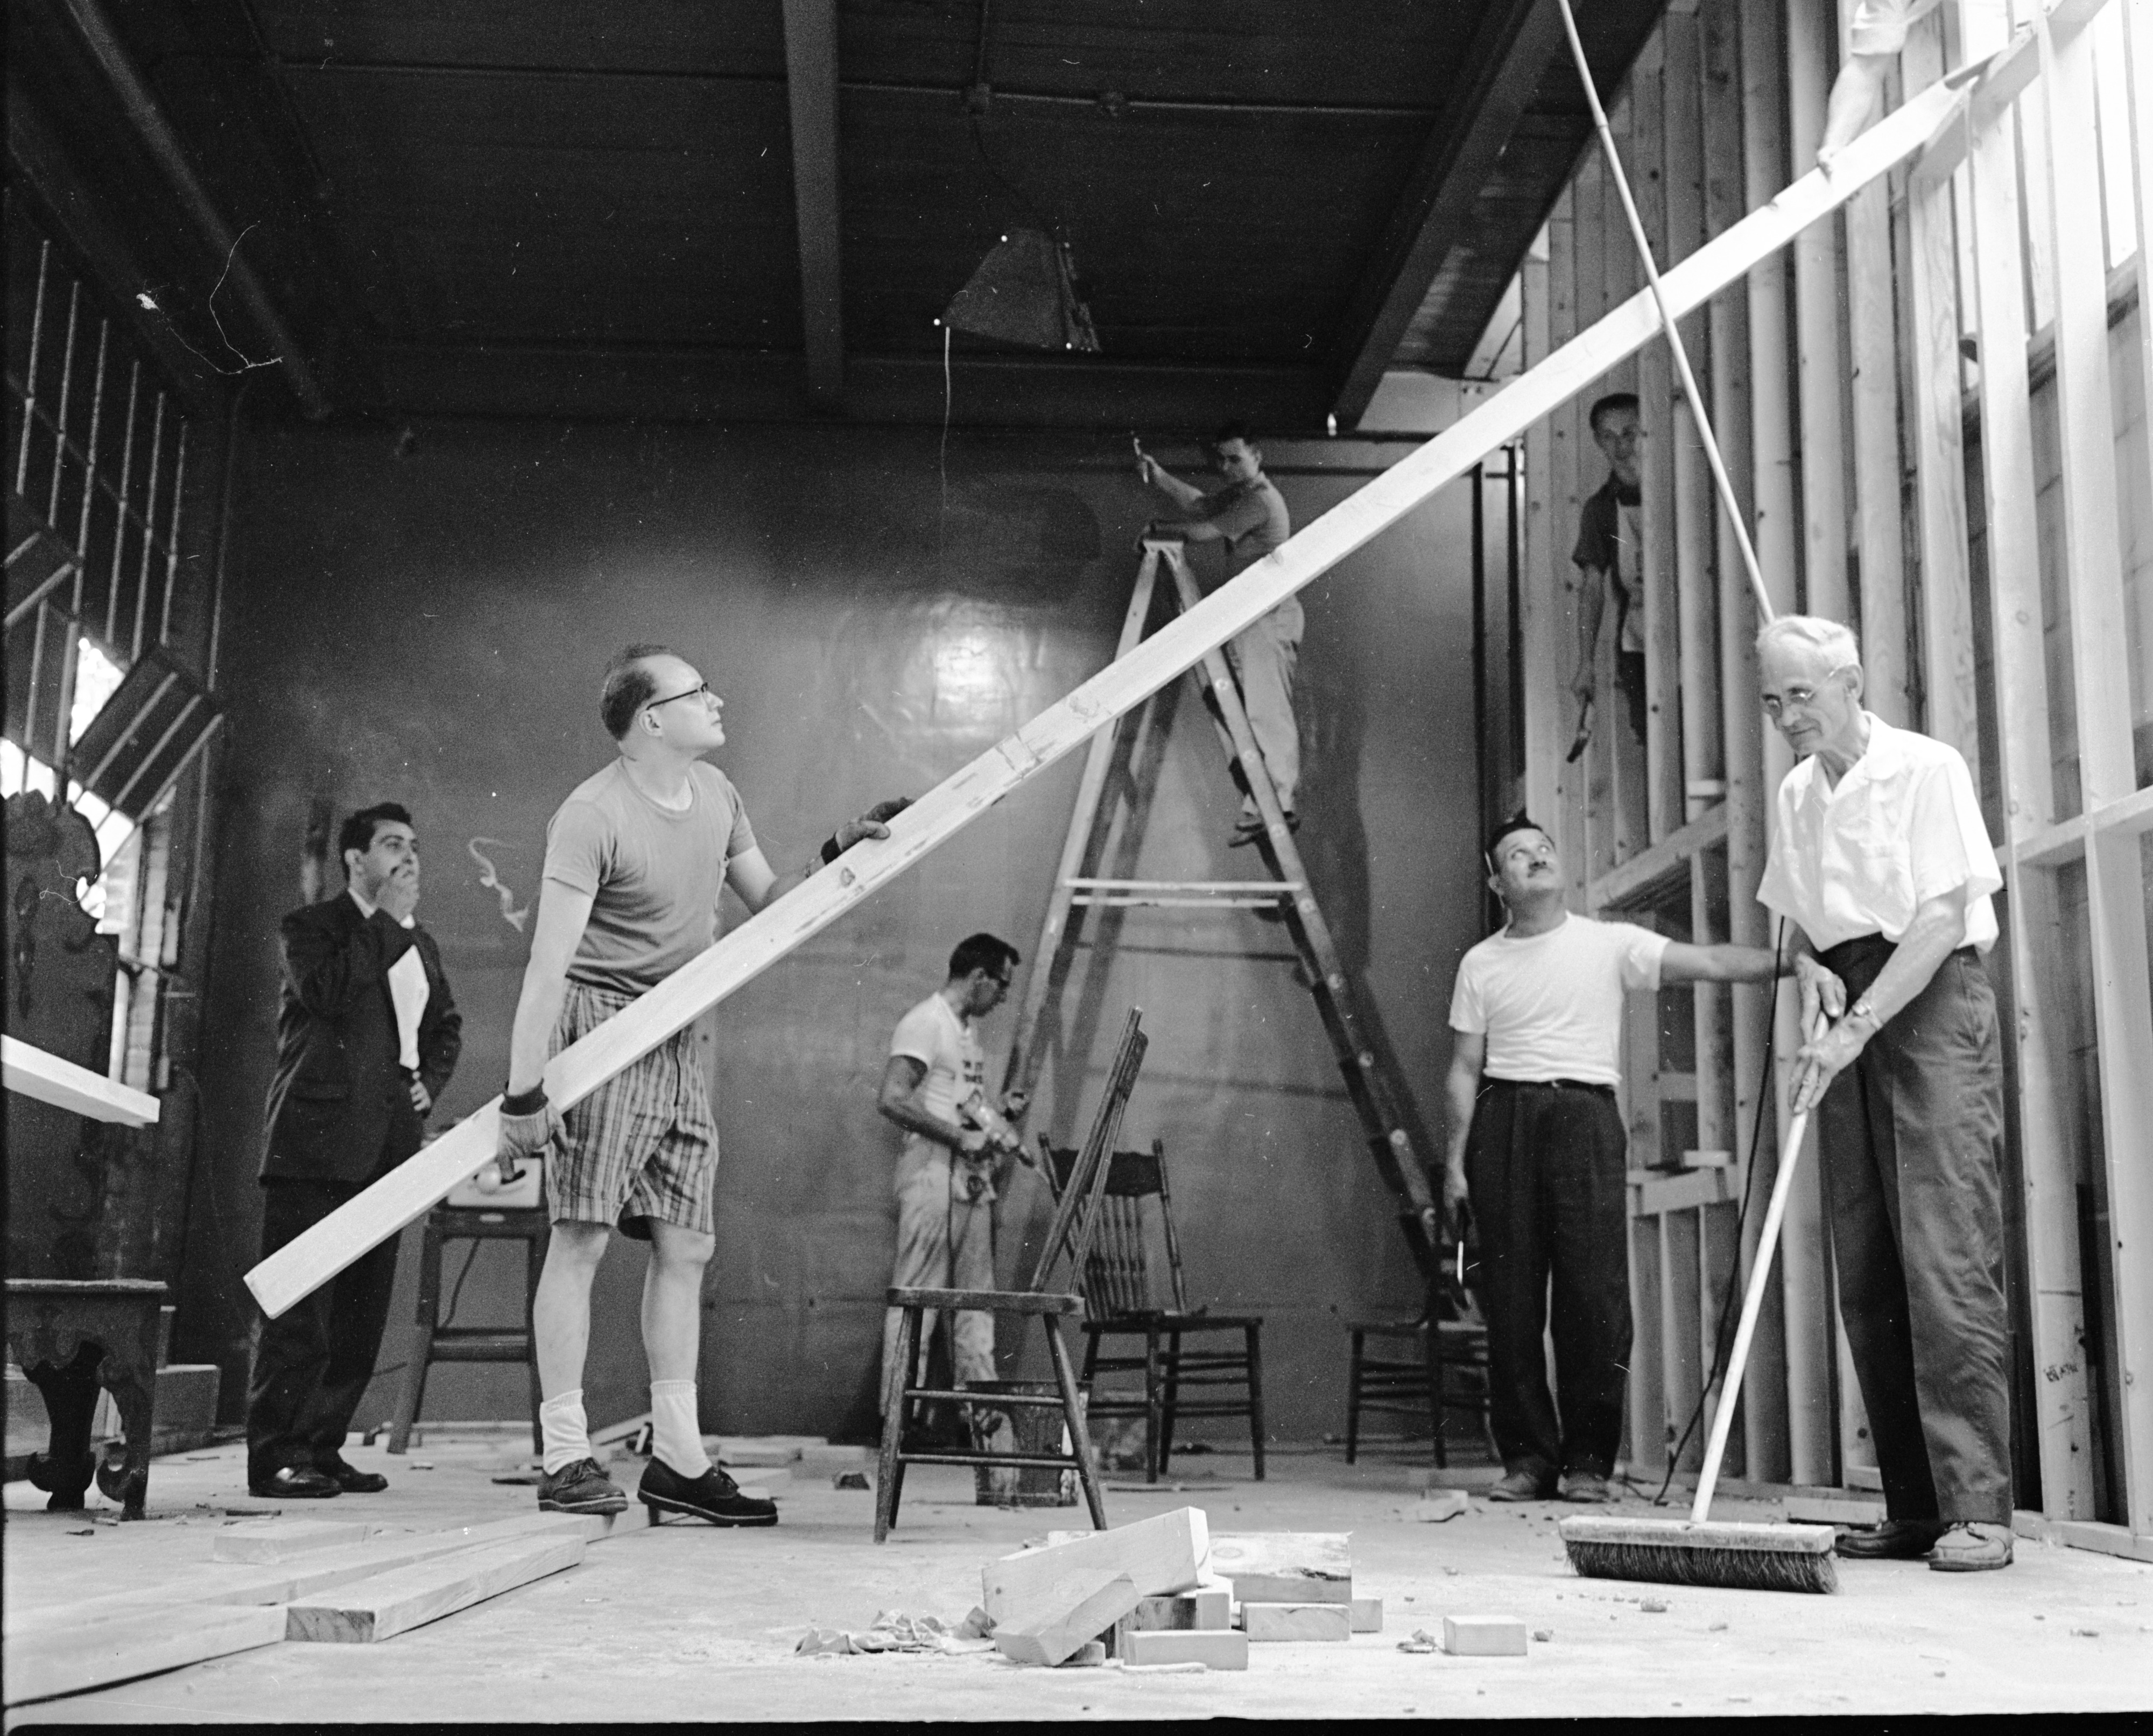 Ann Arbor Civic Theatre Members Renovate Old Waterworks Building for New AACT Home, July 1963 image